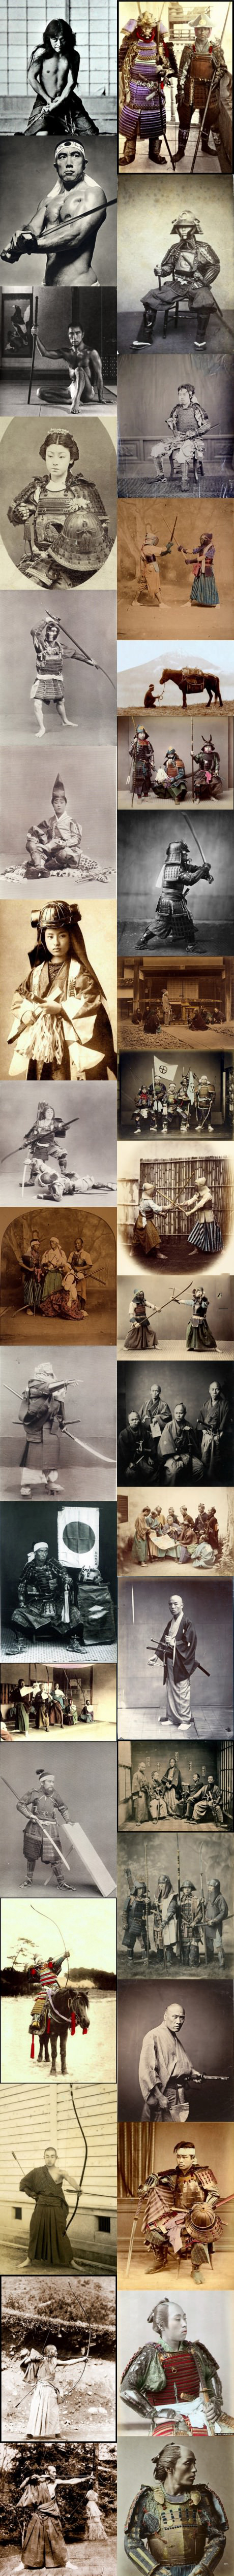 photographs-of-samurai